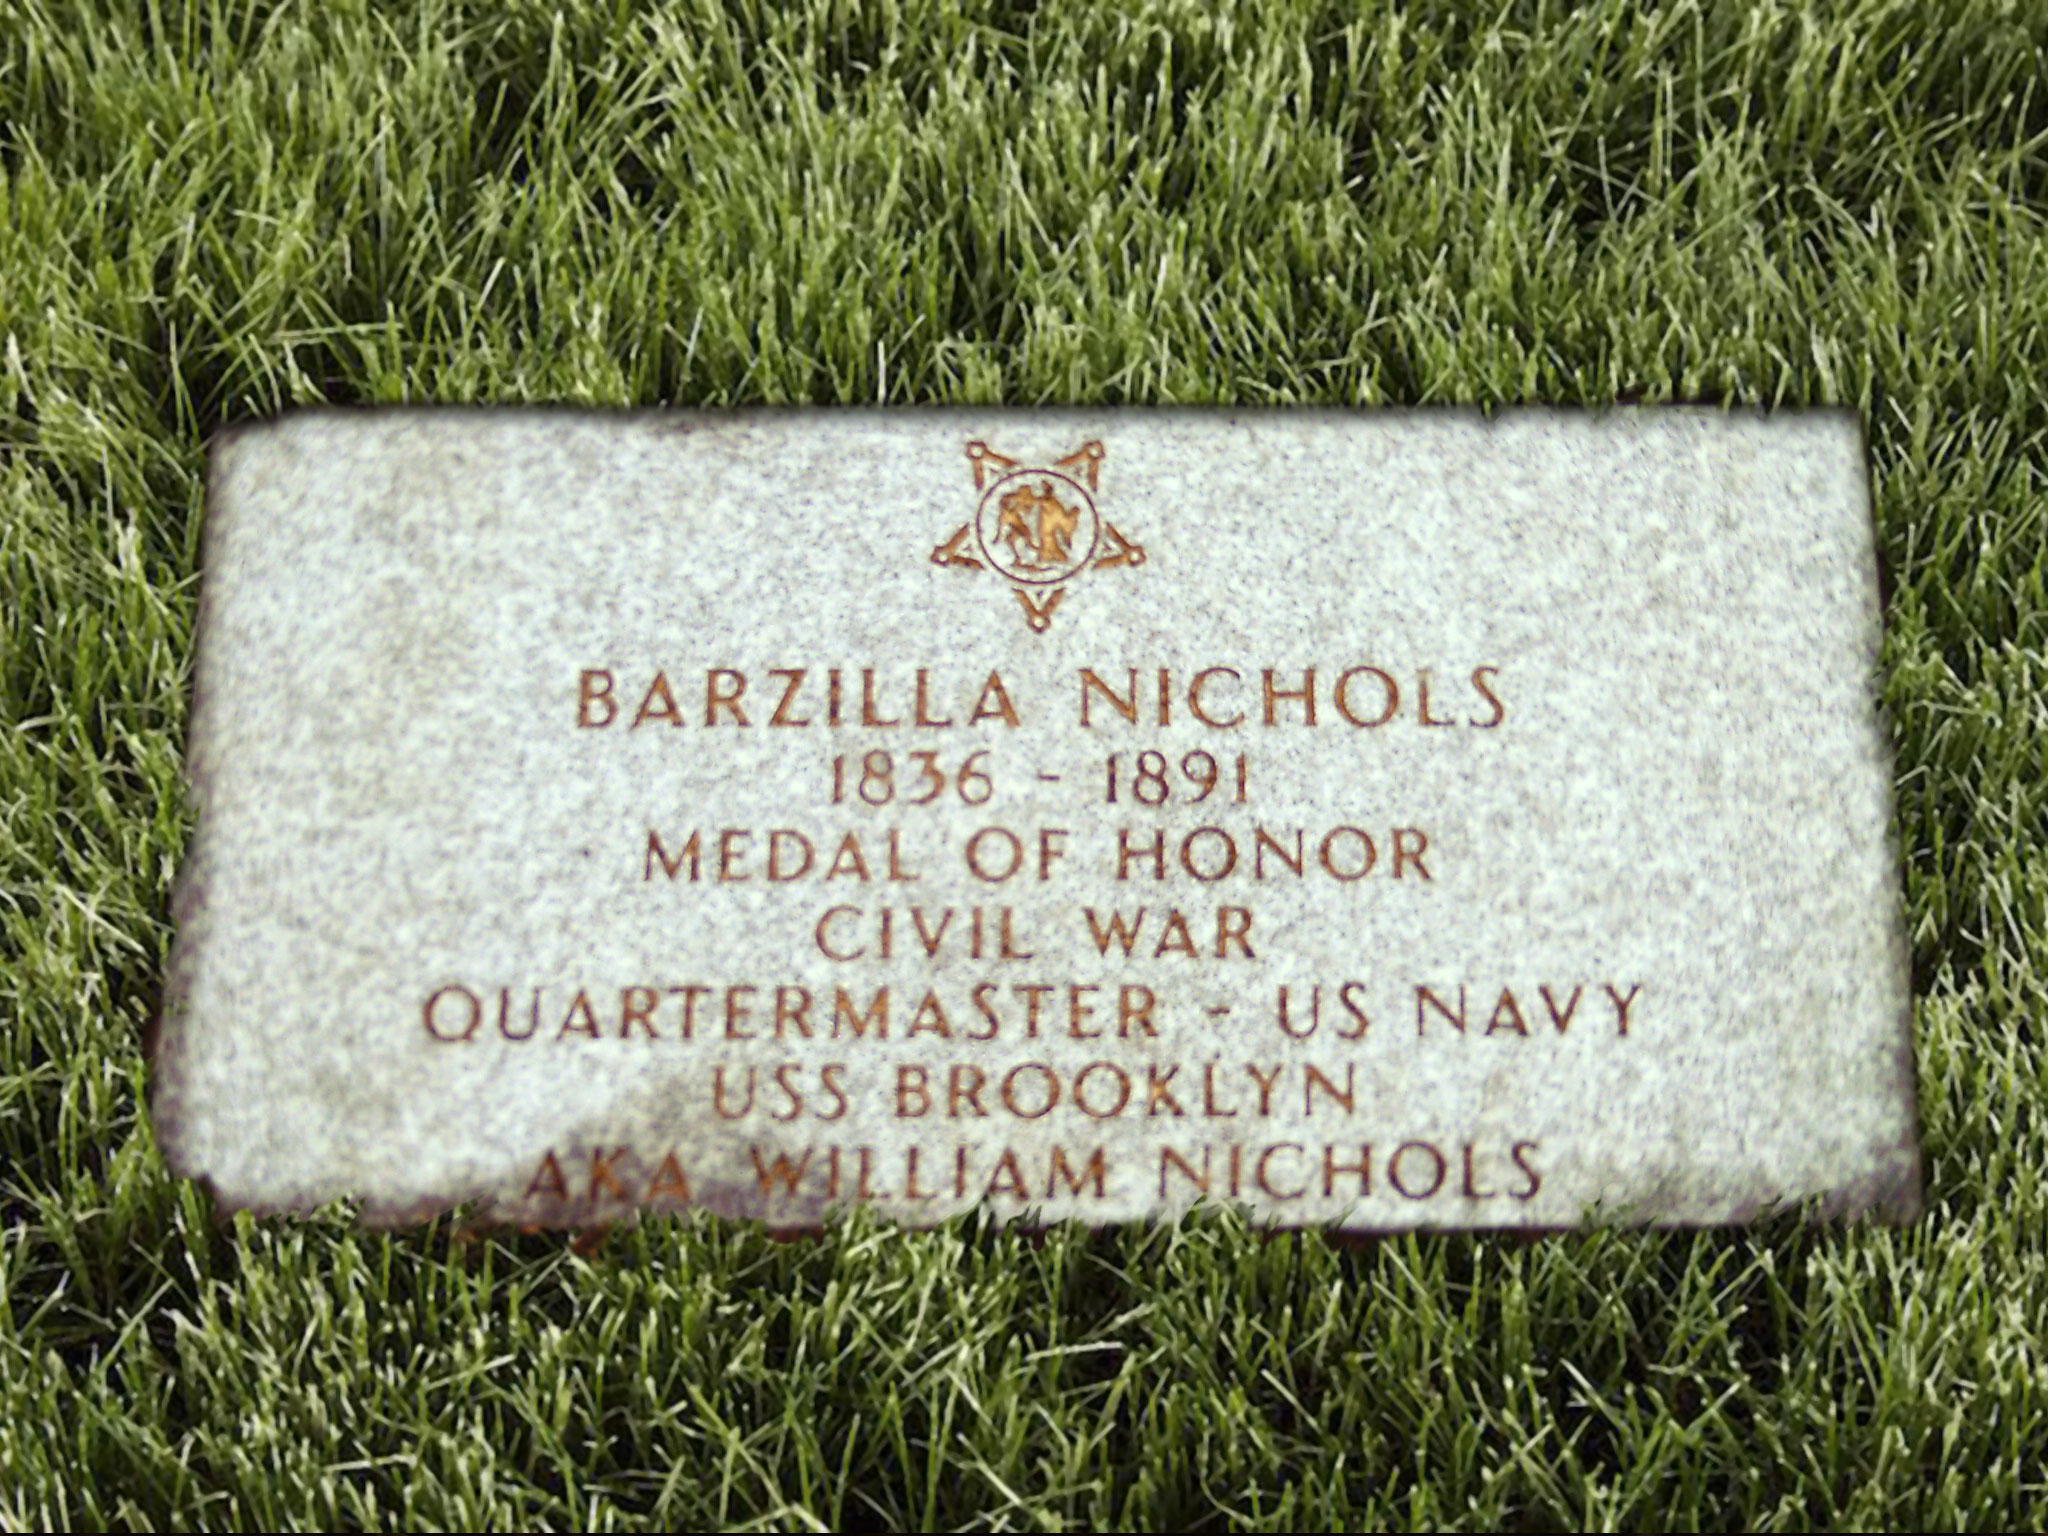 Grave marker for Medal of Honor recipient Barzilla Nichols.